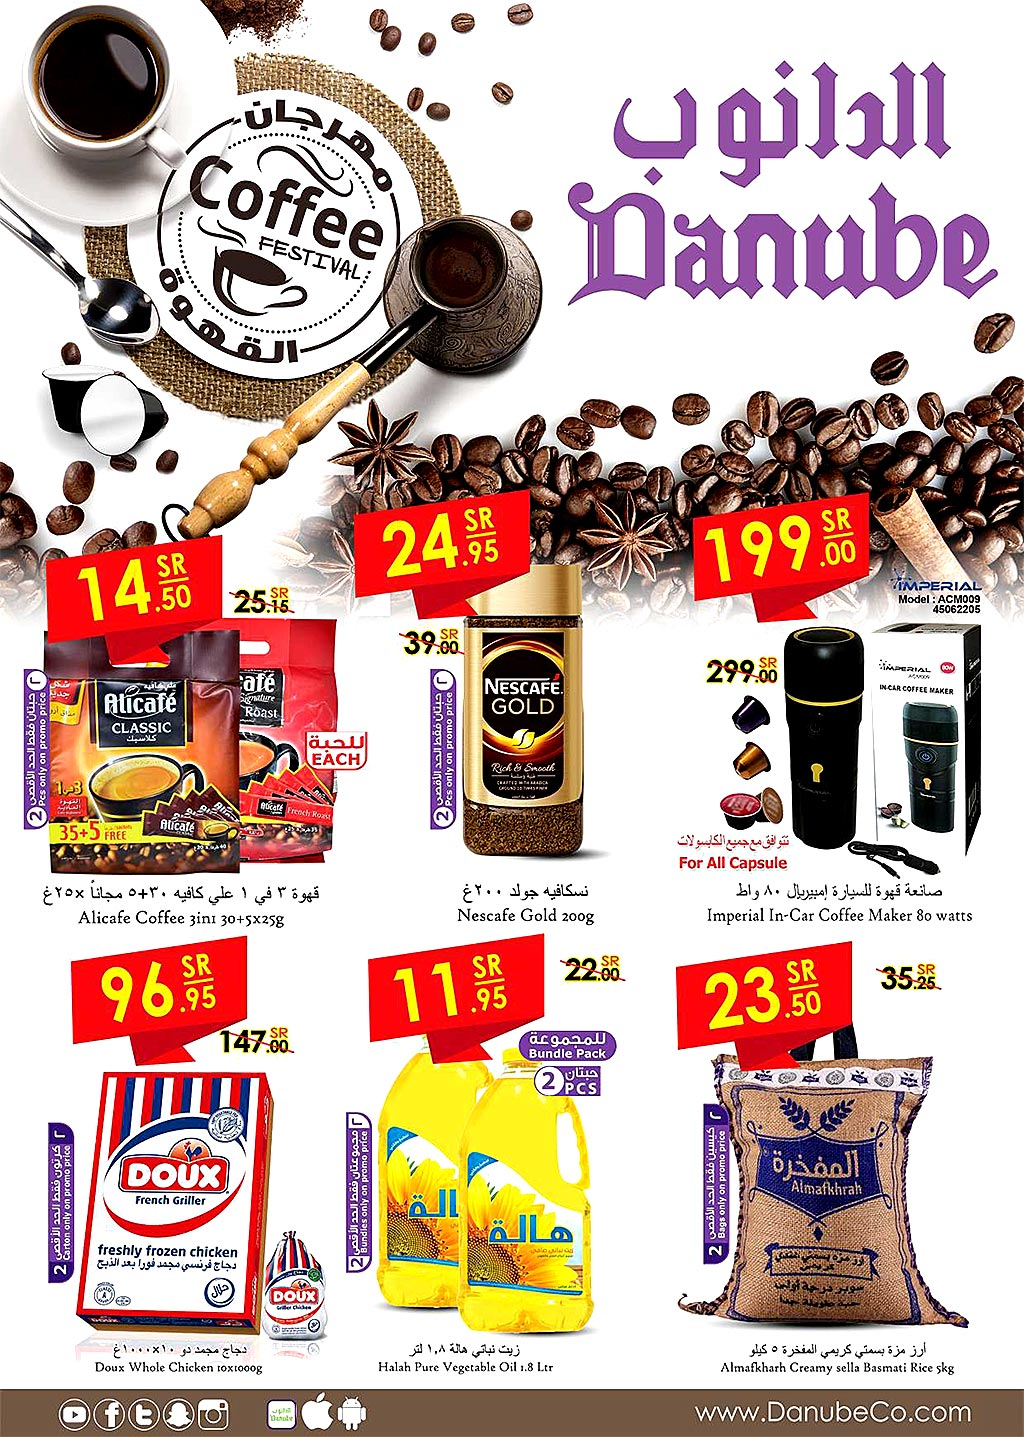 danube offers from 9oct to 16oct 2019 page number 1 عروض الدانوب من 9 أكتوبر حتى 16 أكتوبر 2019 صفحة رقم 1